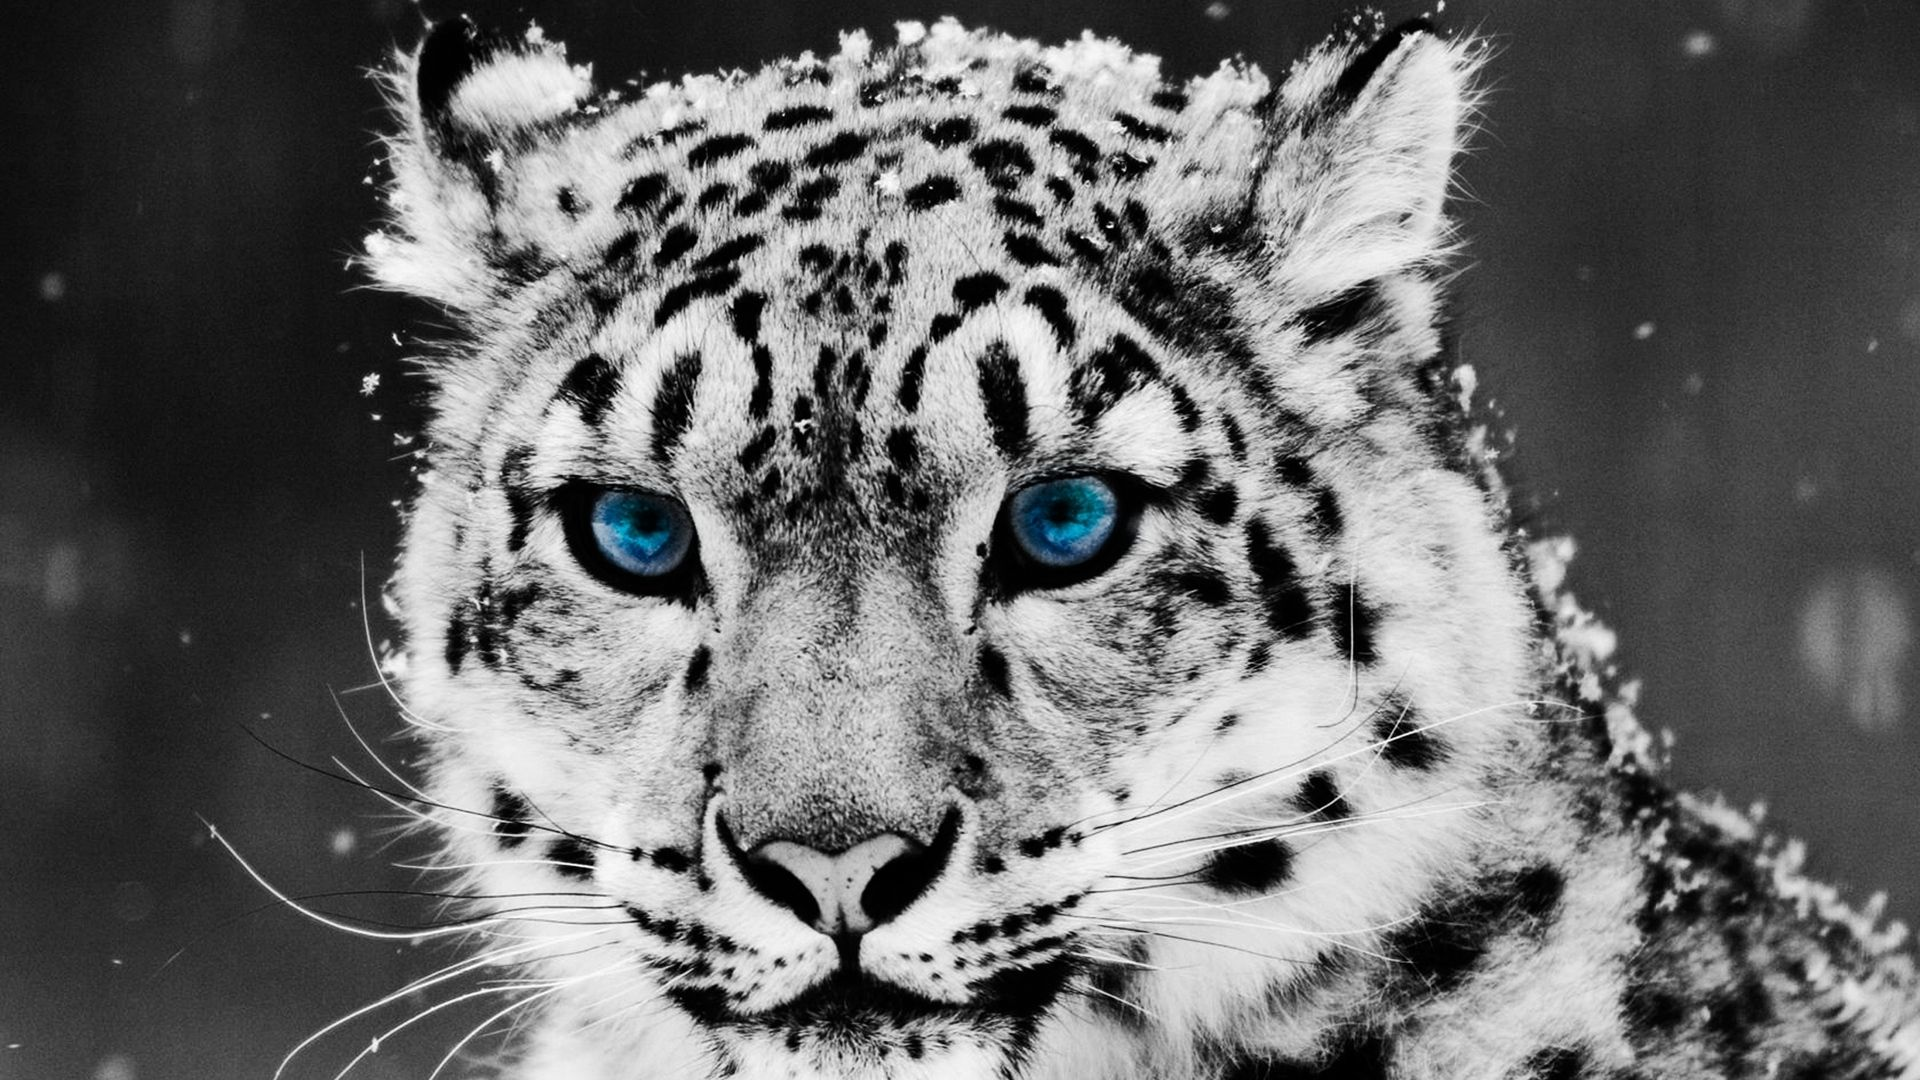 Full Hd P Snow Leopard Wallpapers Hd Desktop Backgrounds